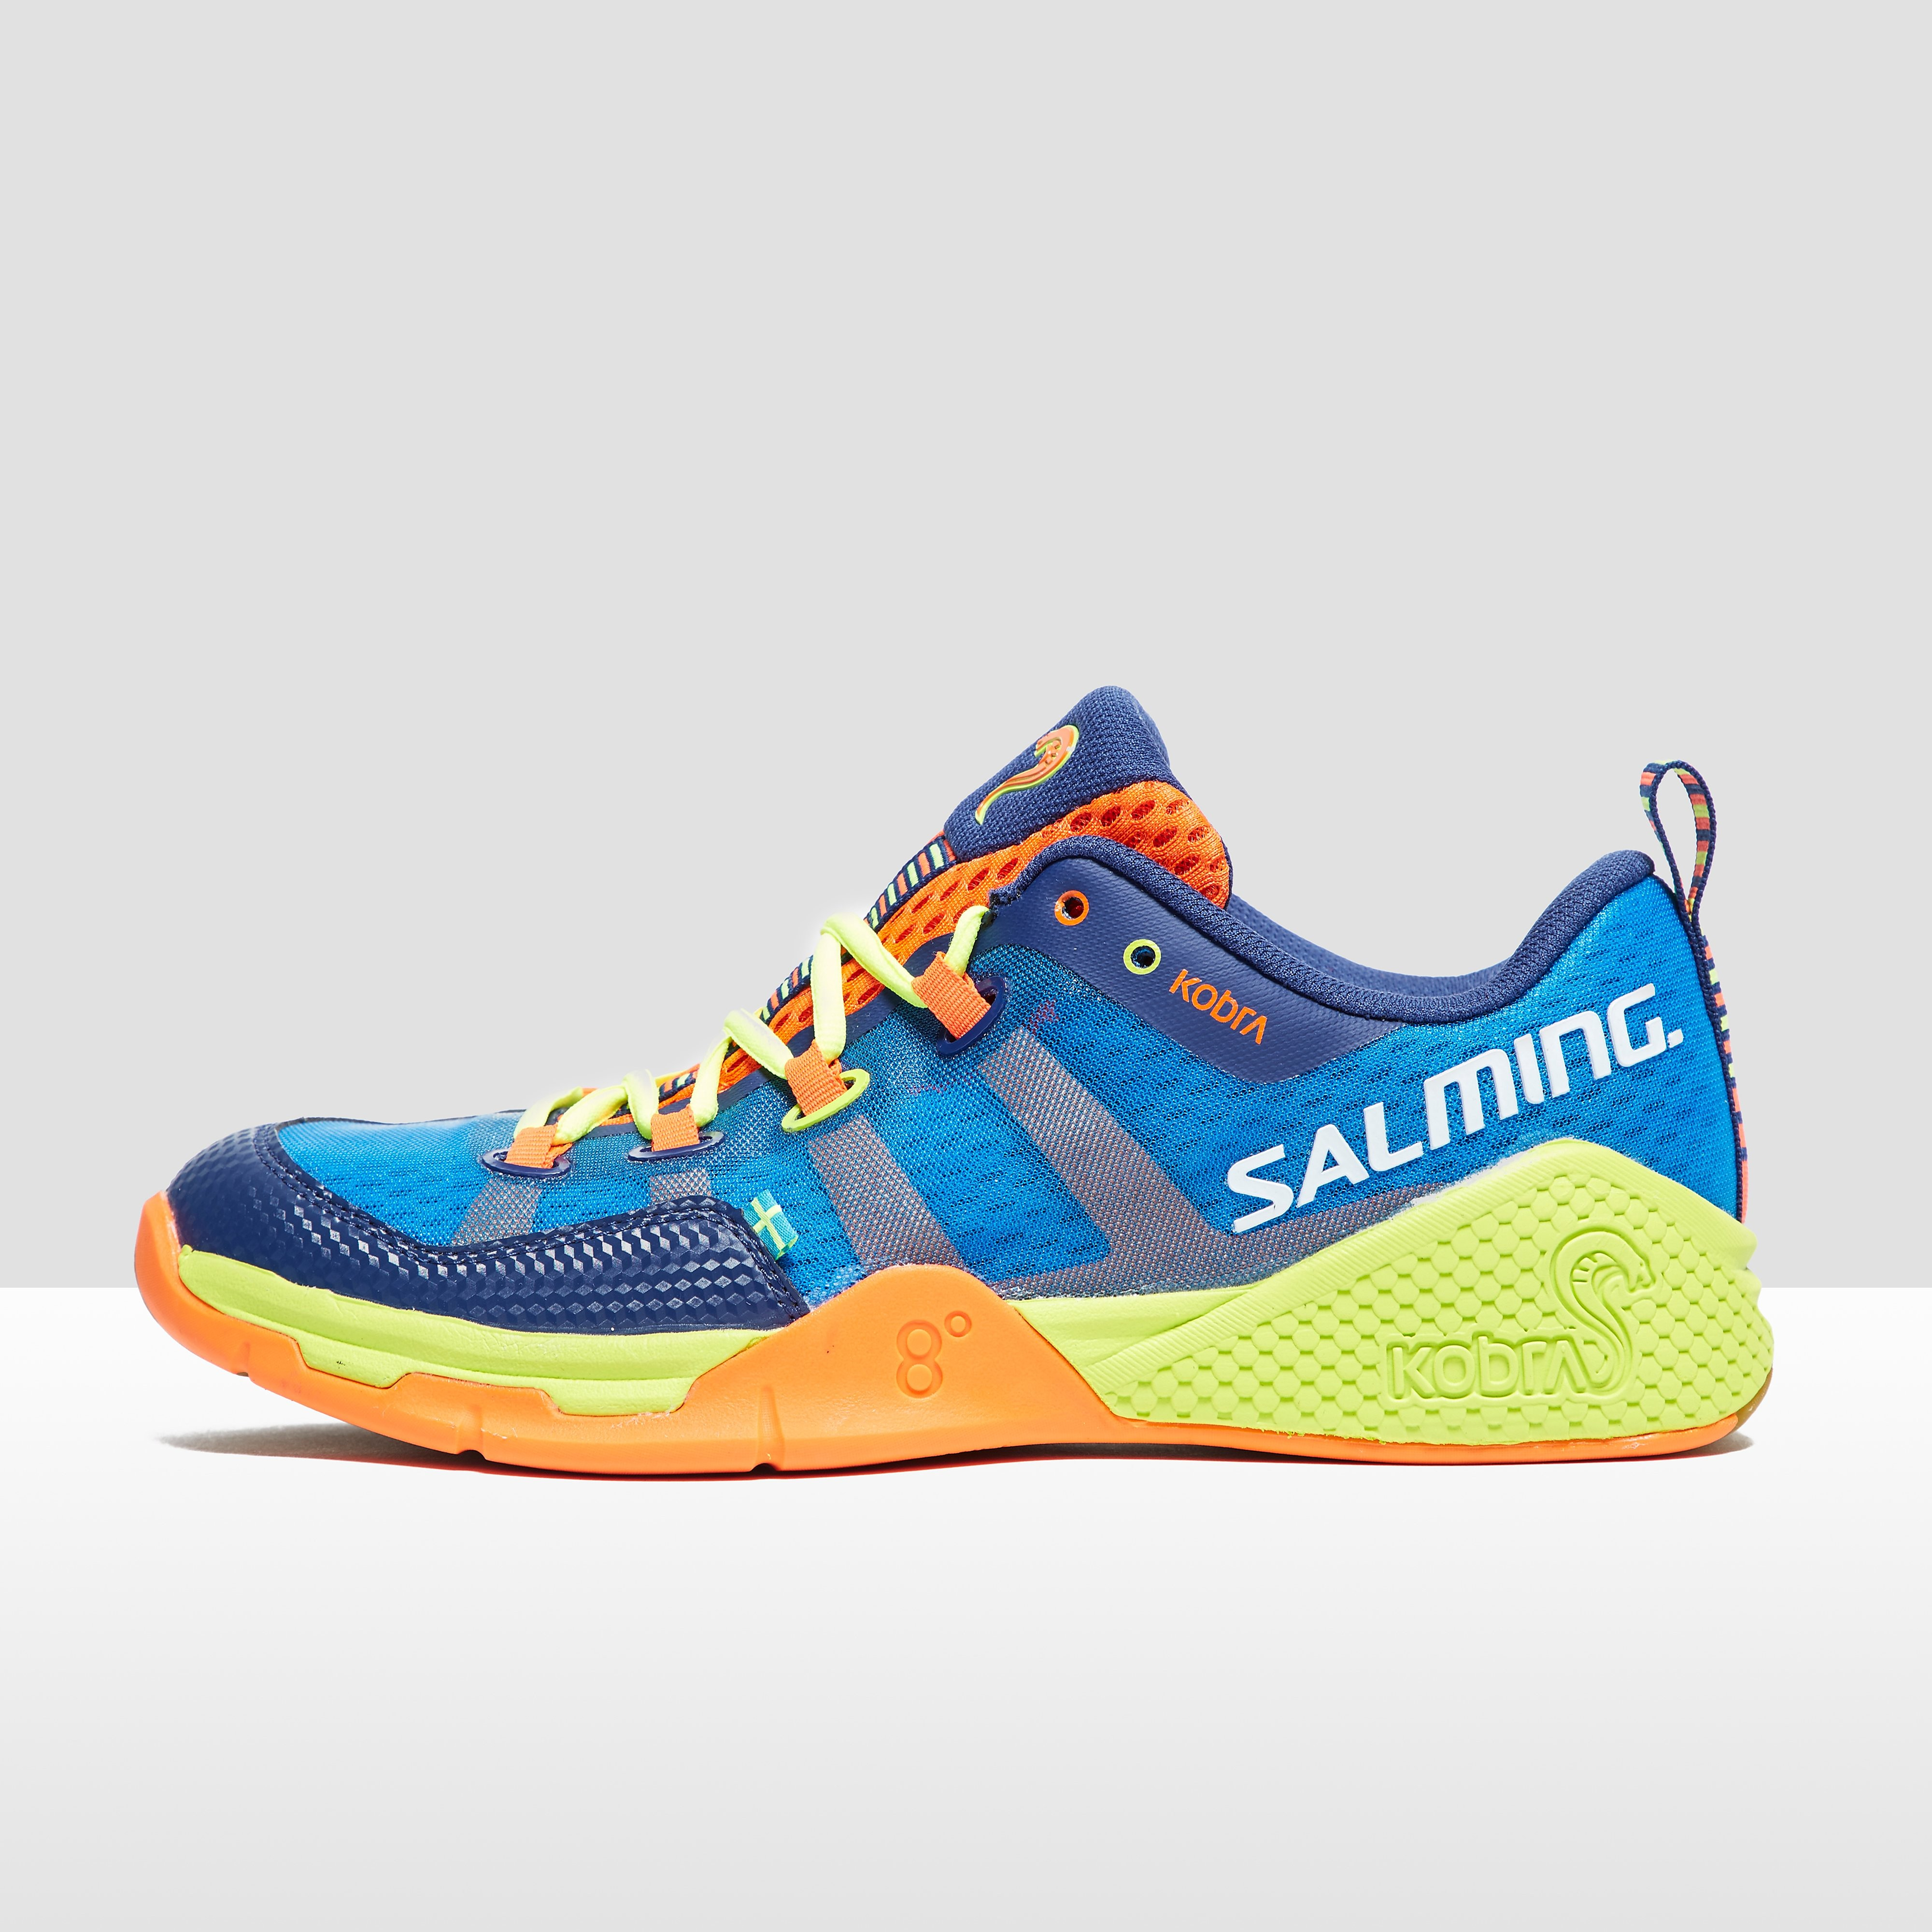 Salming Kobra Men's Indoor Court Shoes